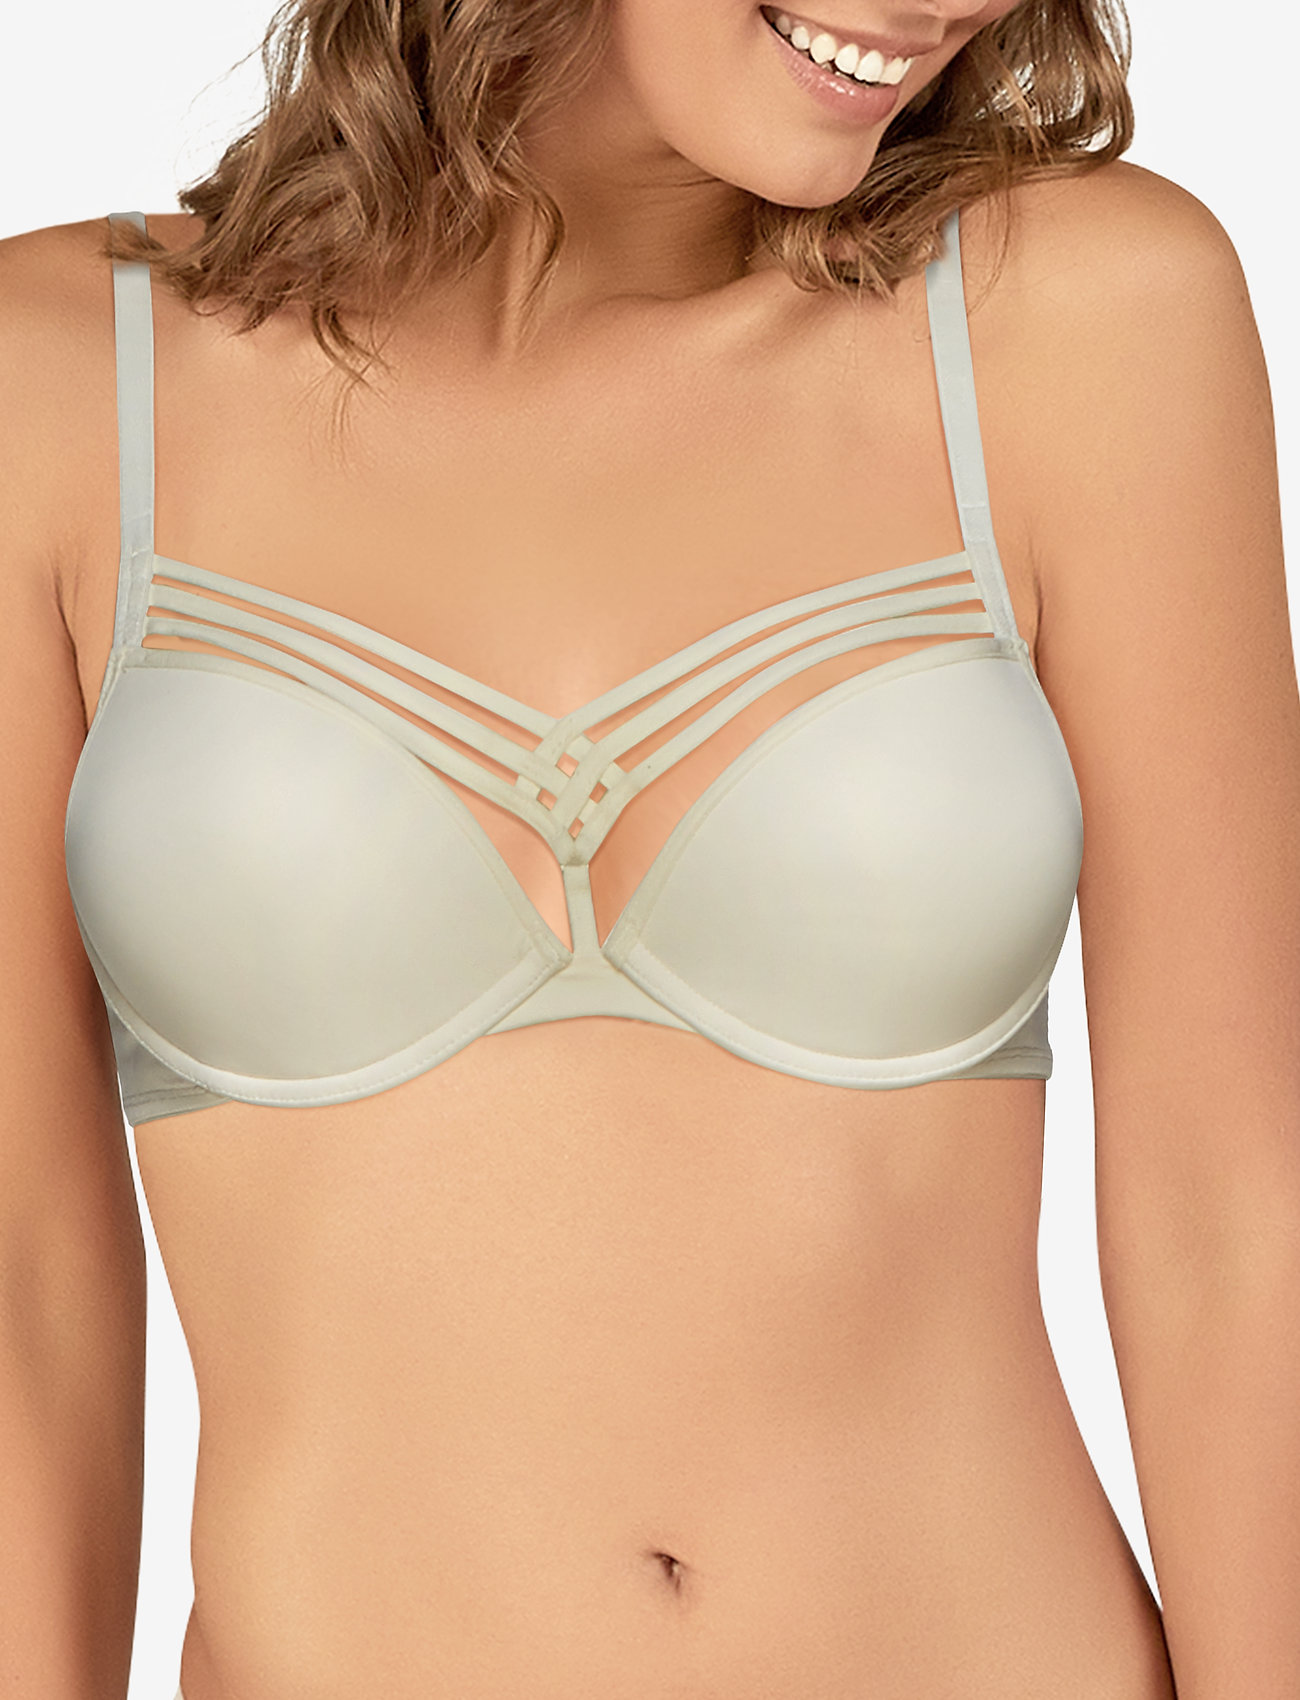 Marlies Dekkers Md D.de Paris Push Up Ivory - Bh:ar